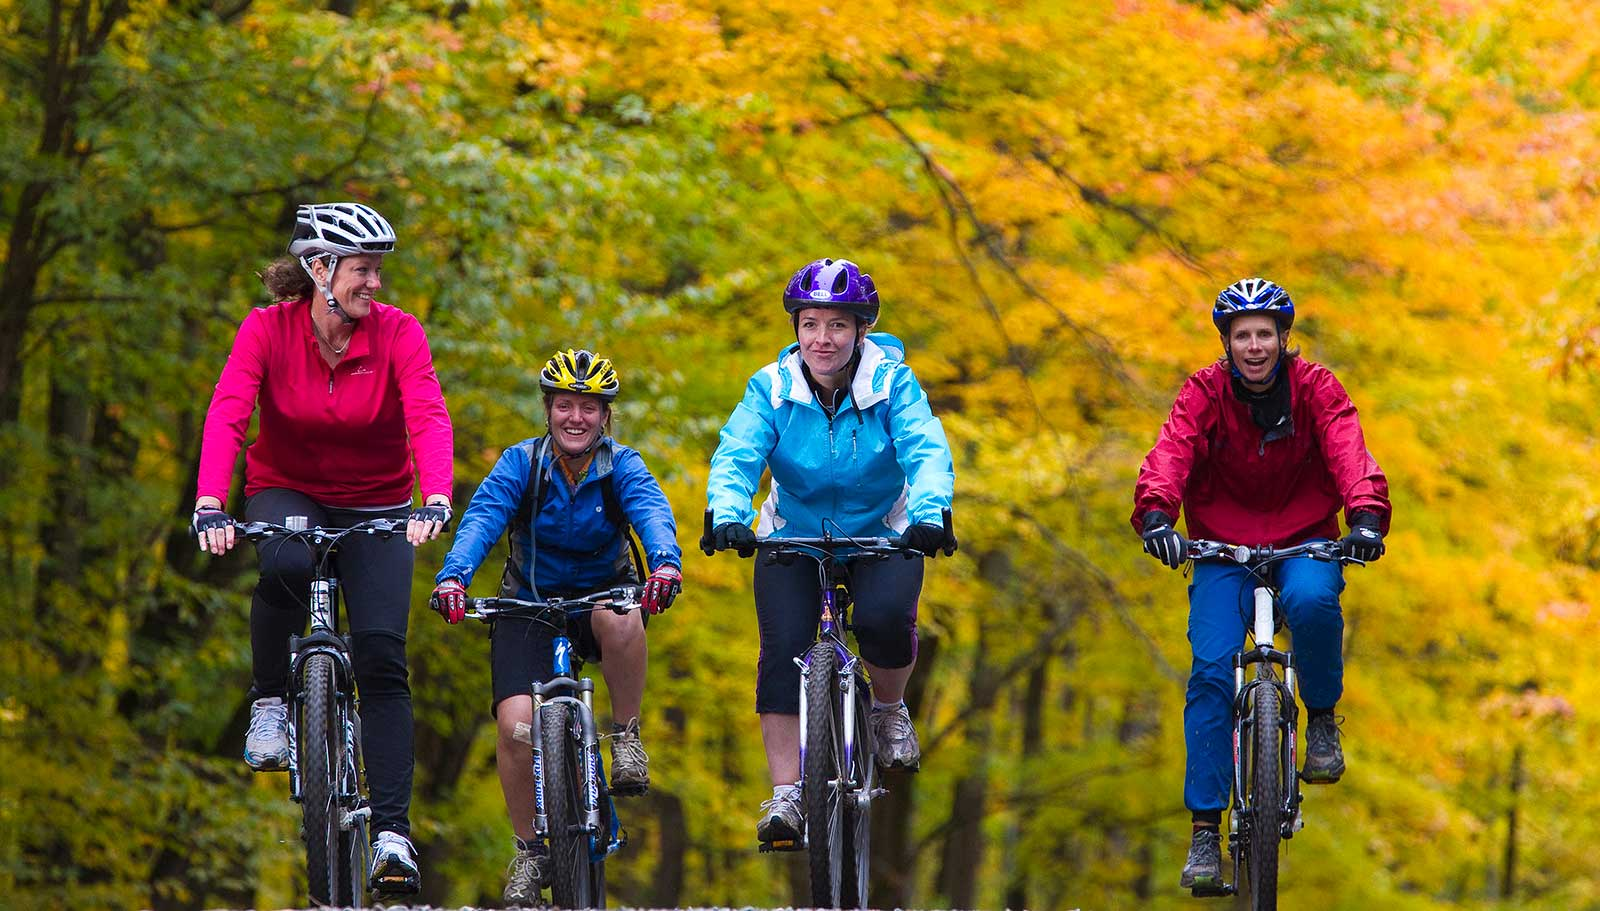 Fall biking trip with four women